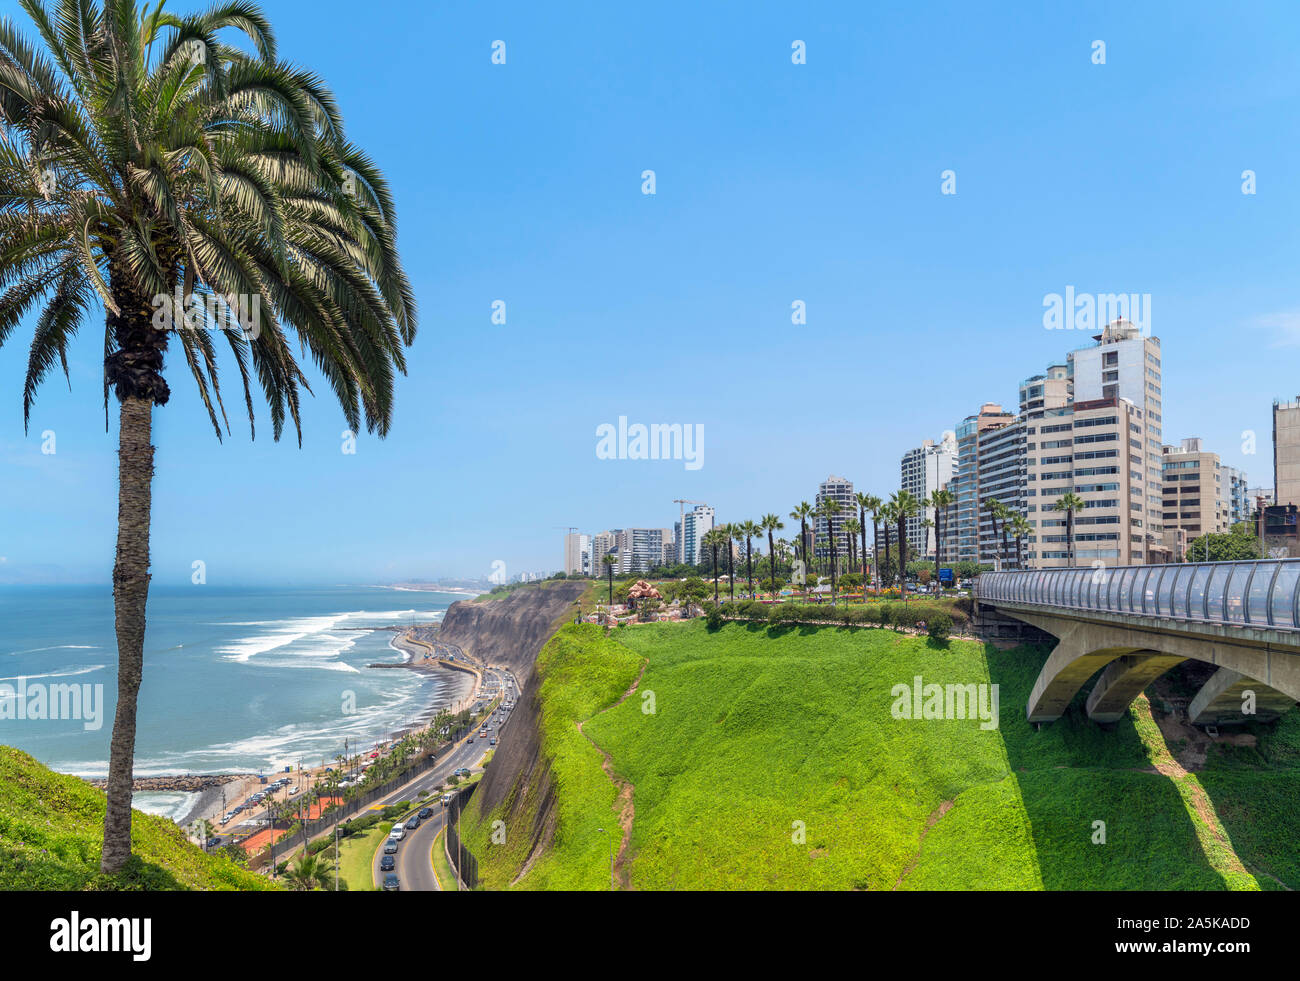 View of Miraflores from Parque Intihuatana on the clifftops overlooking the Pacific Ocean, Lima, Peru, South America Stock Photo